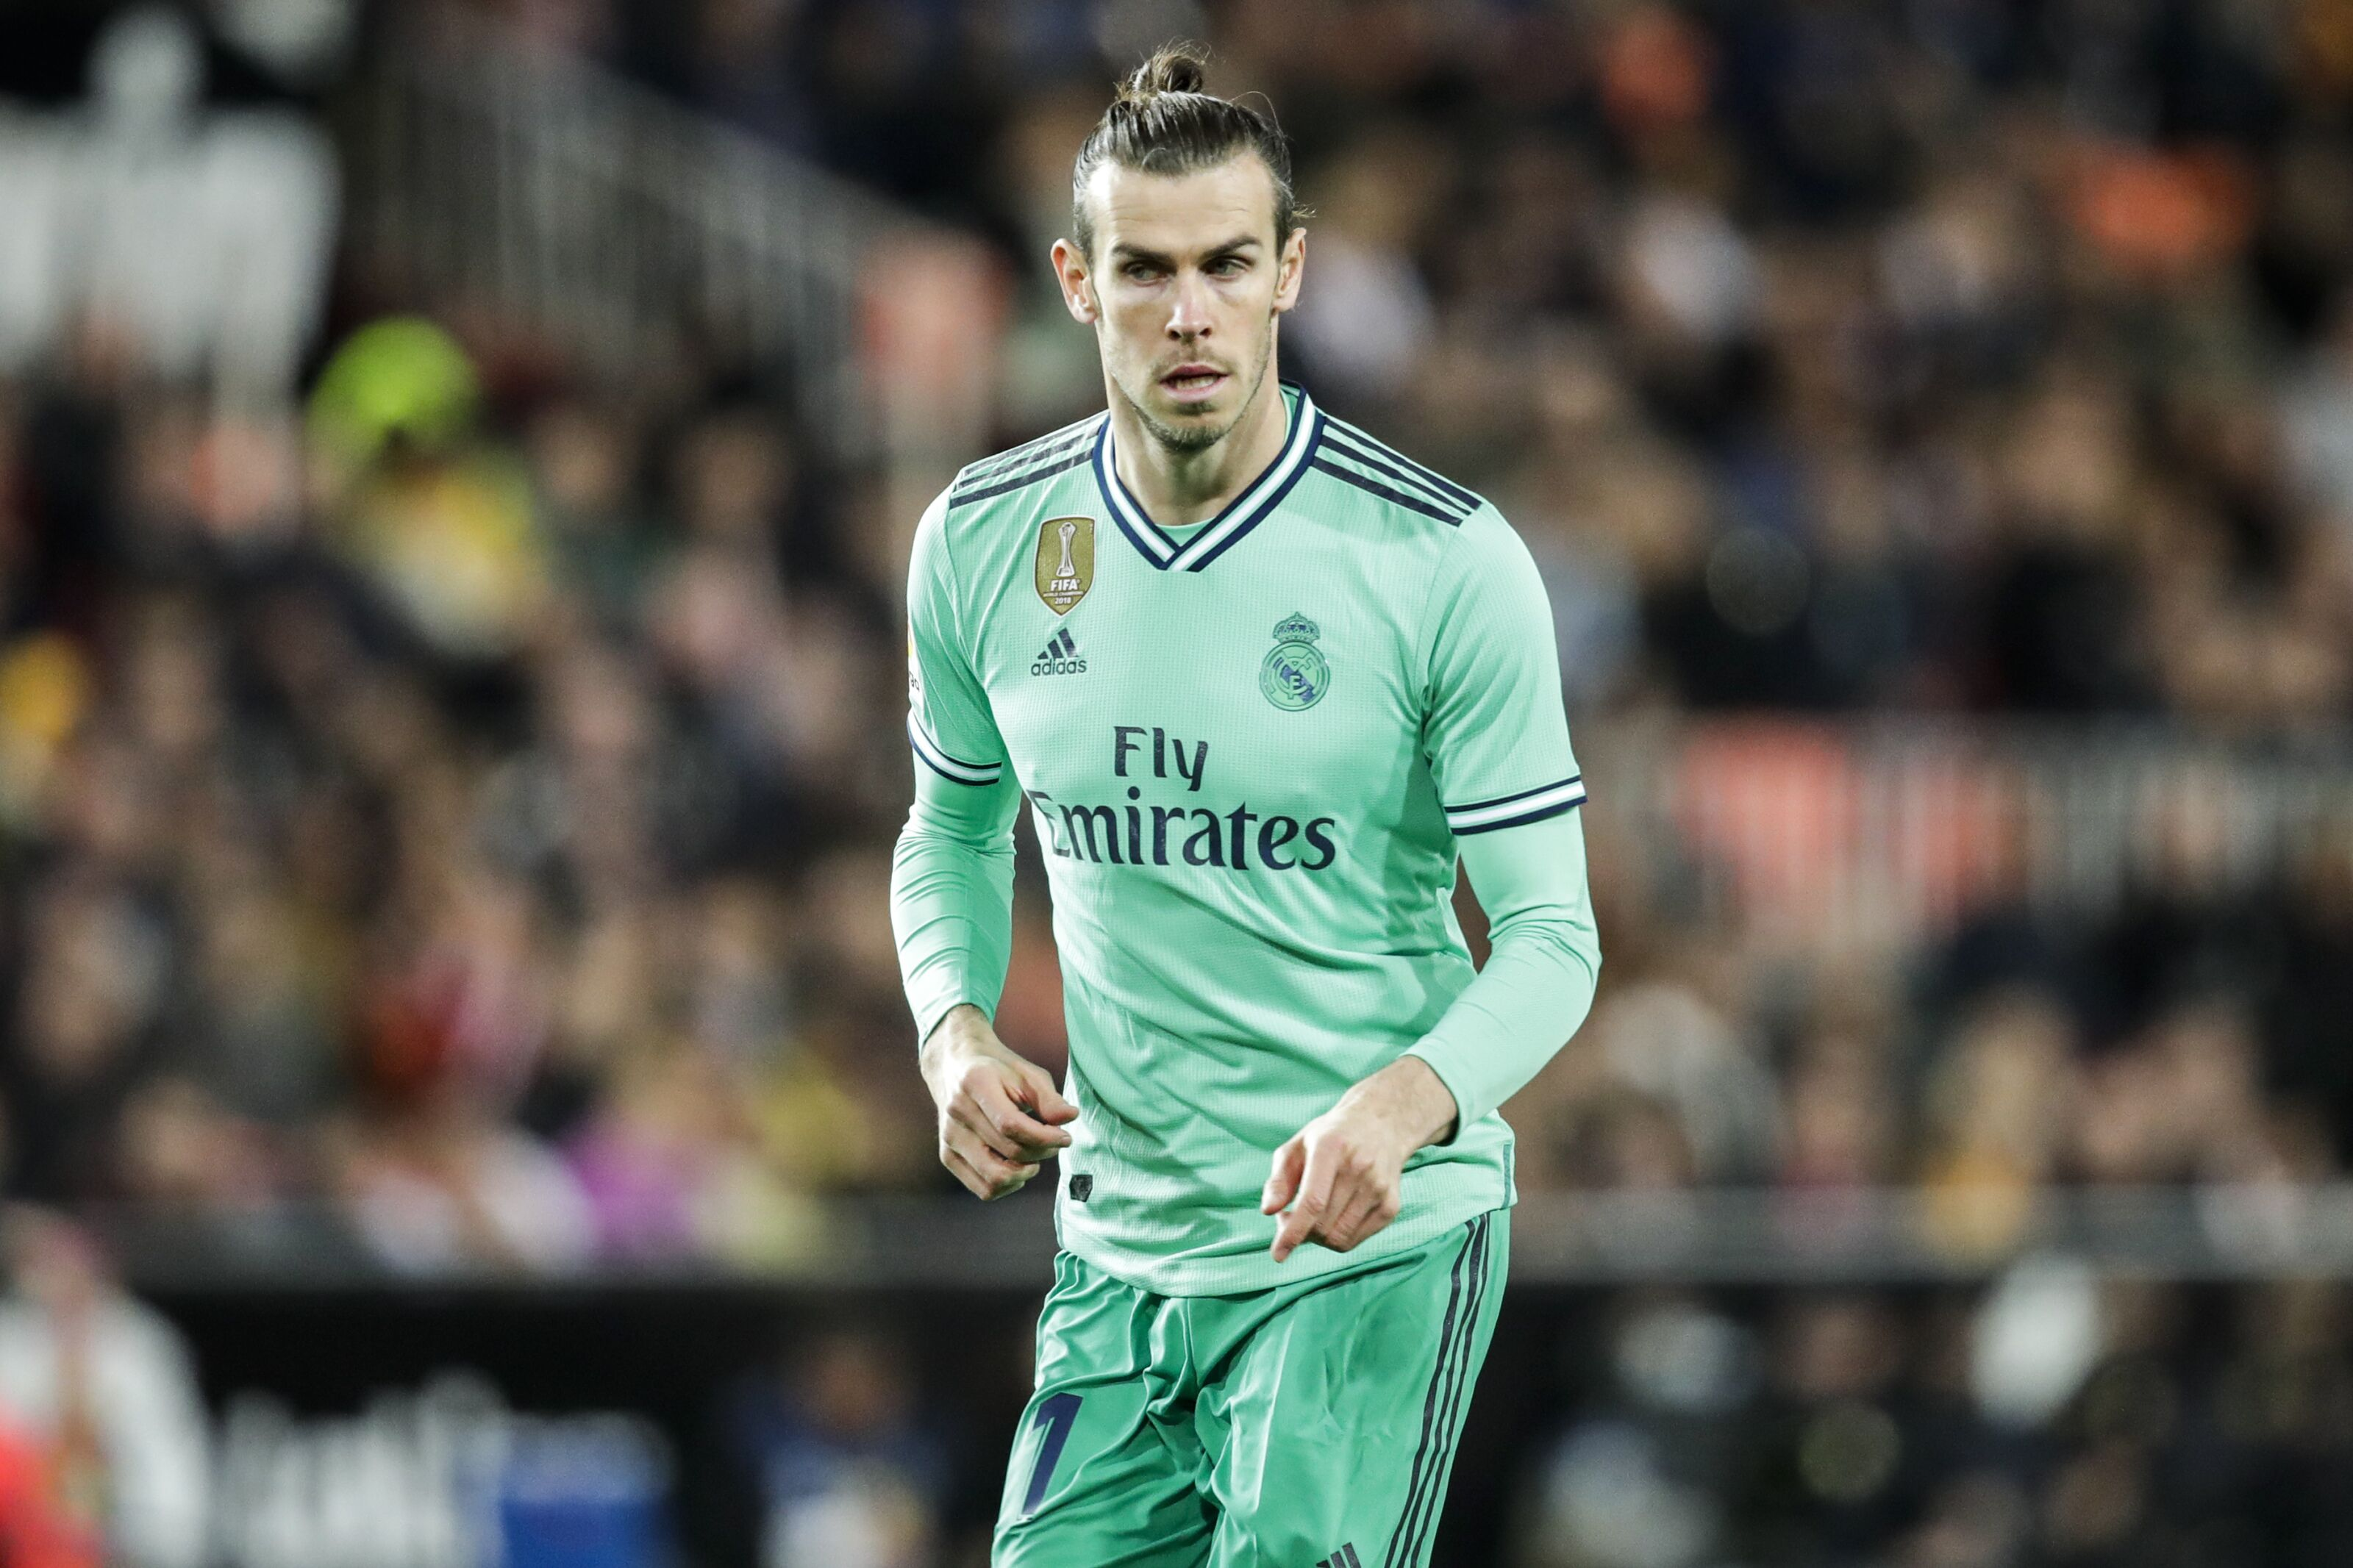 Real Madrid will probably not have Gareth Bale against Zaragoza